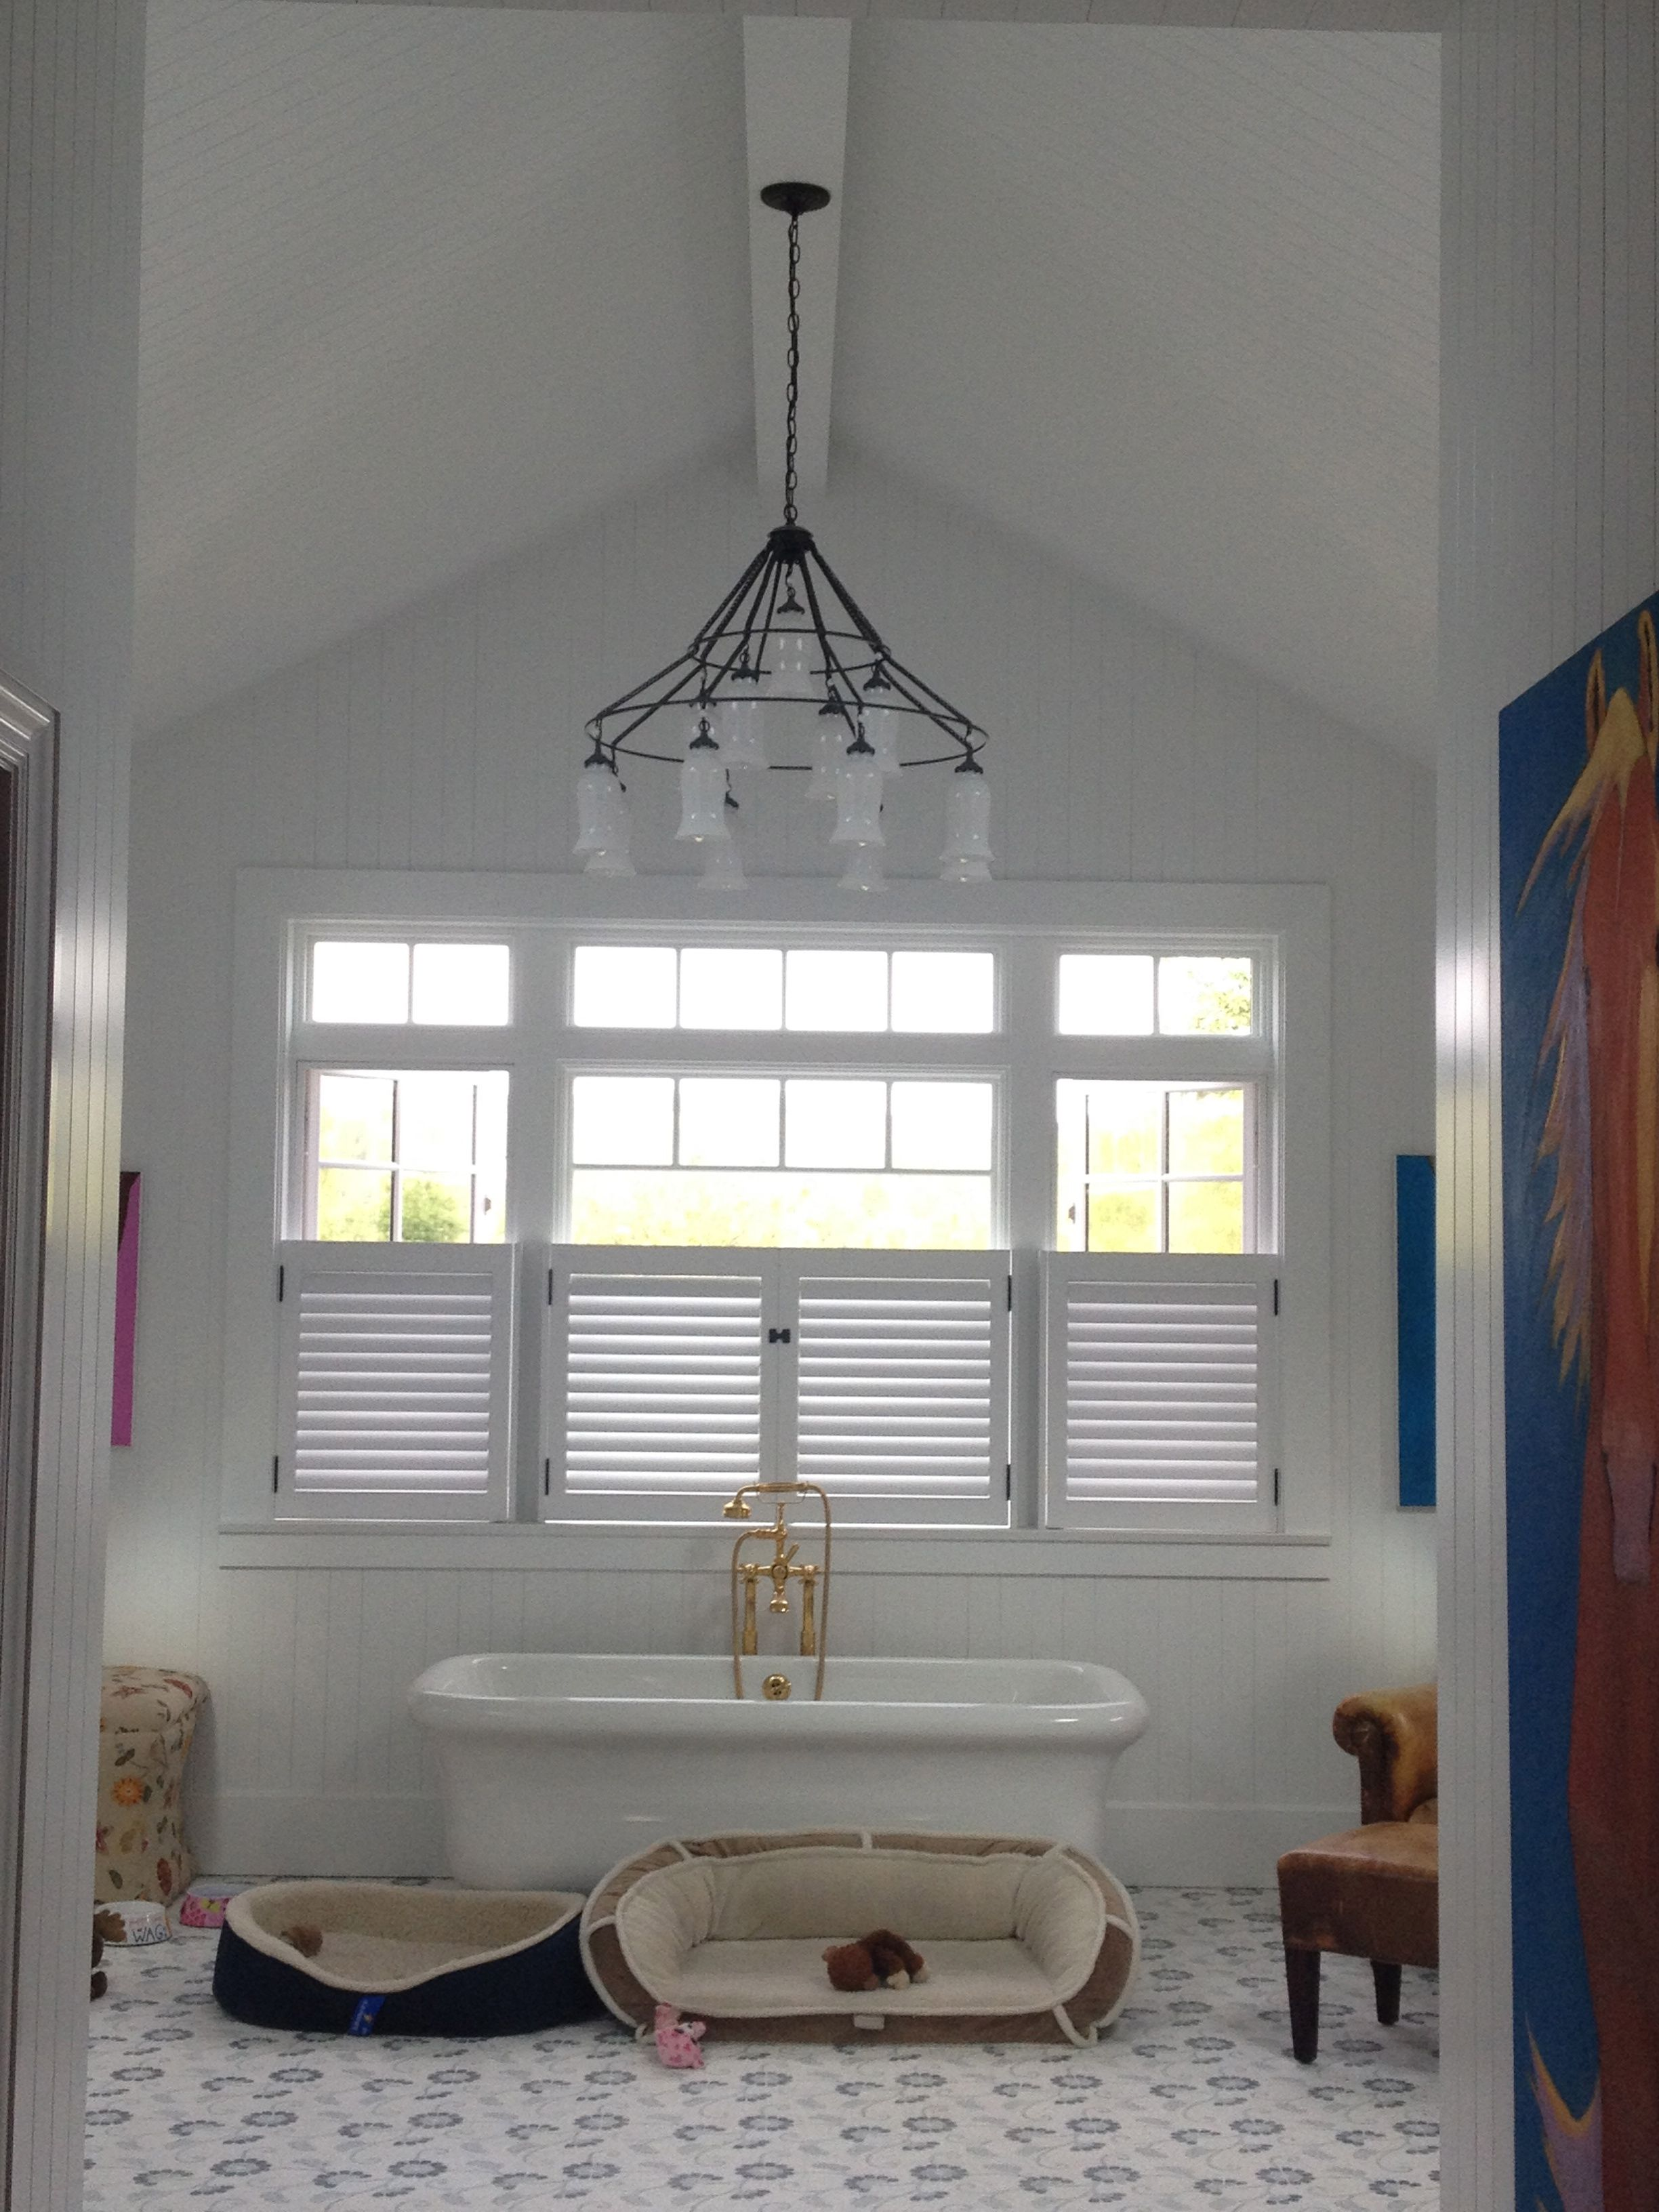 Sara chandelier with white globes decatur street pinterest sara chandelier with white globes arubaitofo Image collections